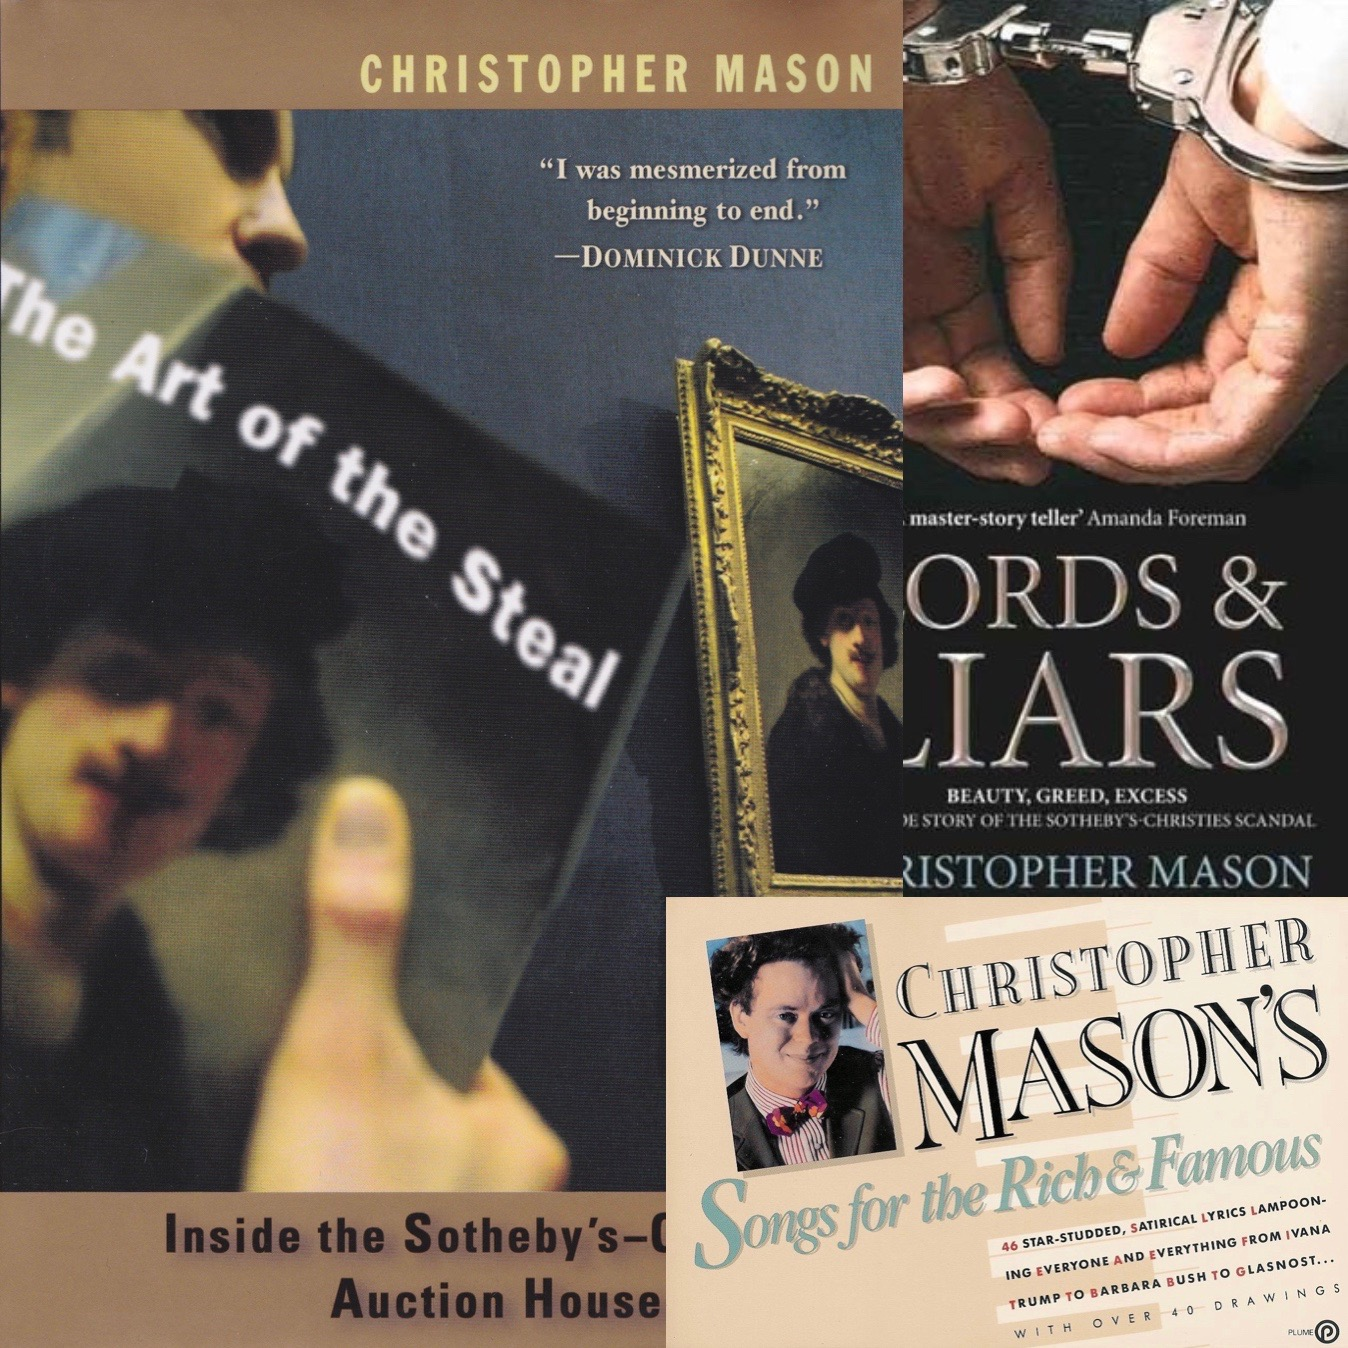 Books by Christopher Mason The Art of the Steal: Inside the Sotheby's-Christies Auction House Scandal, Christopher Mason's Songs for the Rich & Famous Lords & Liars christo4mason